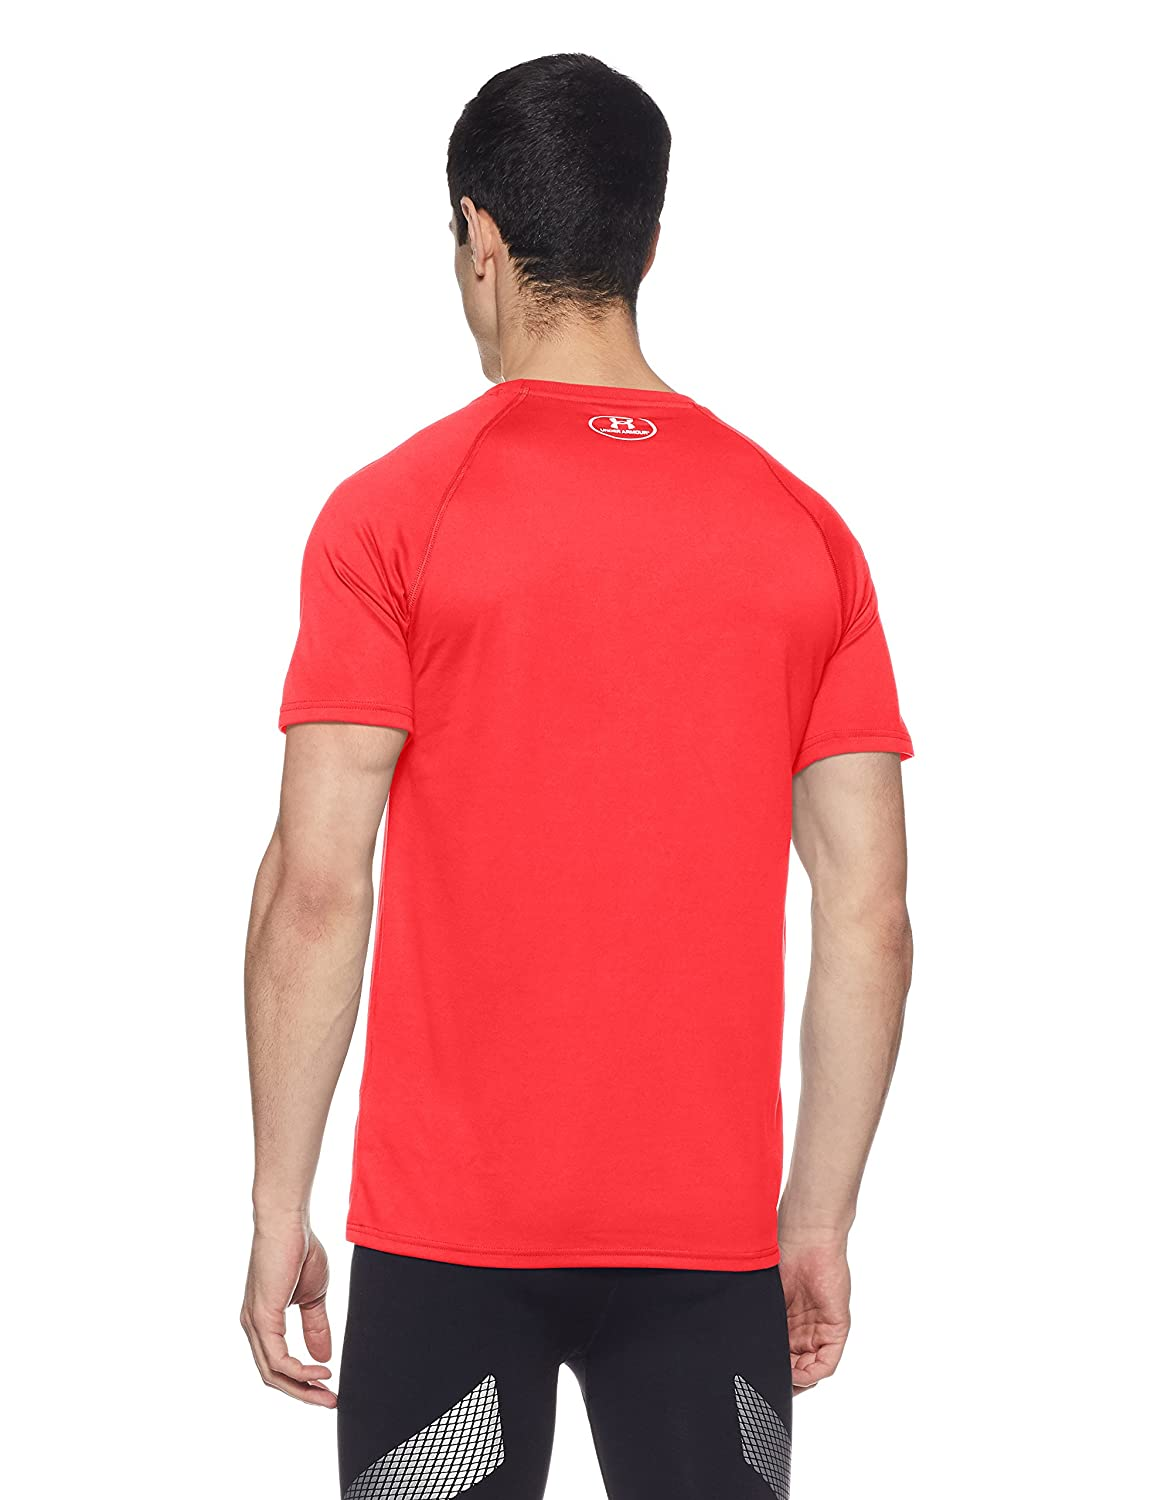 096dbc4d6 Amazon.com   Under Armour Men s Tech Short Sleeve T-Shirt   Sports ...